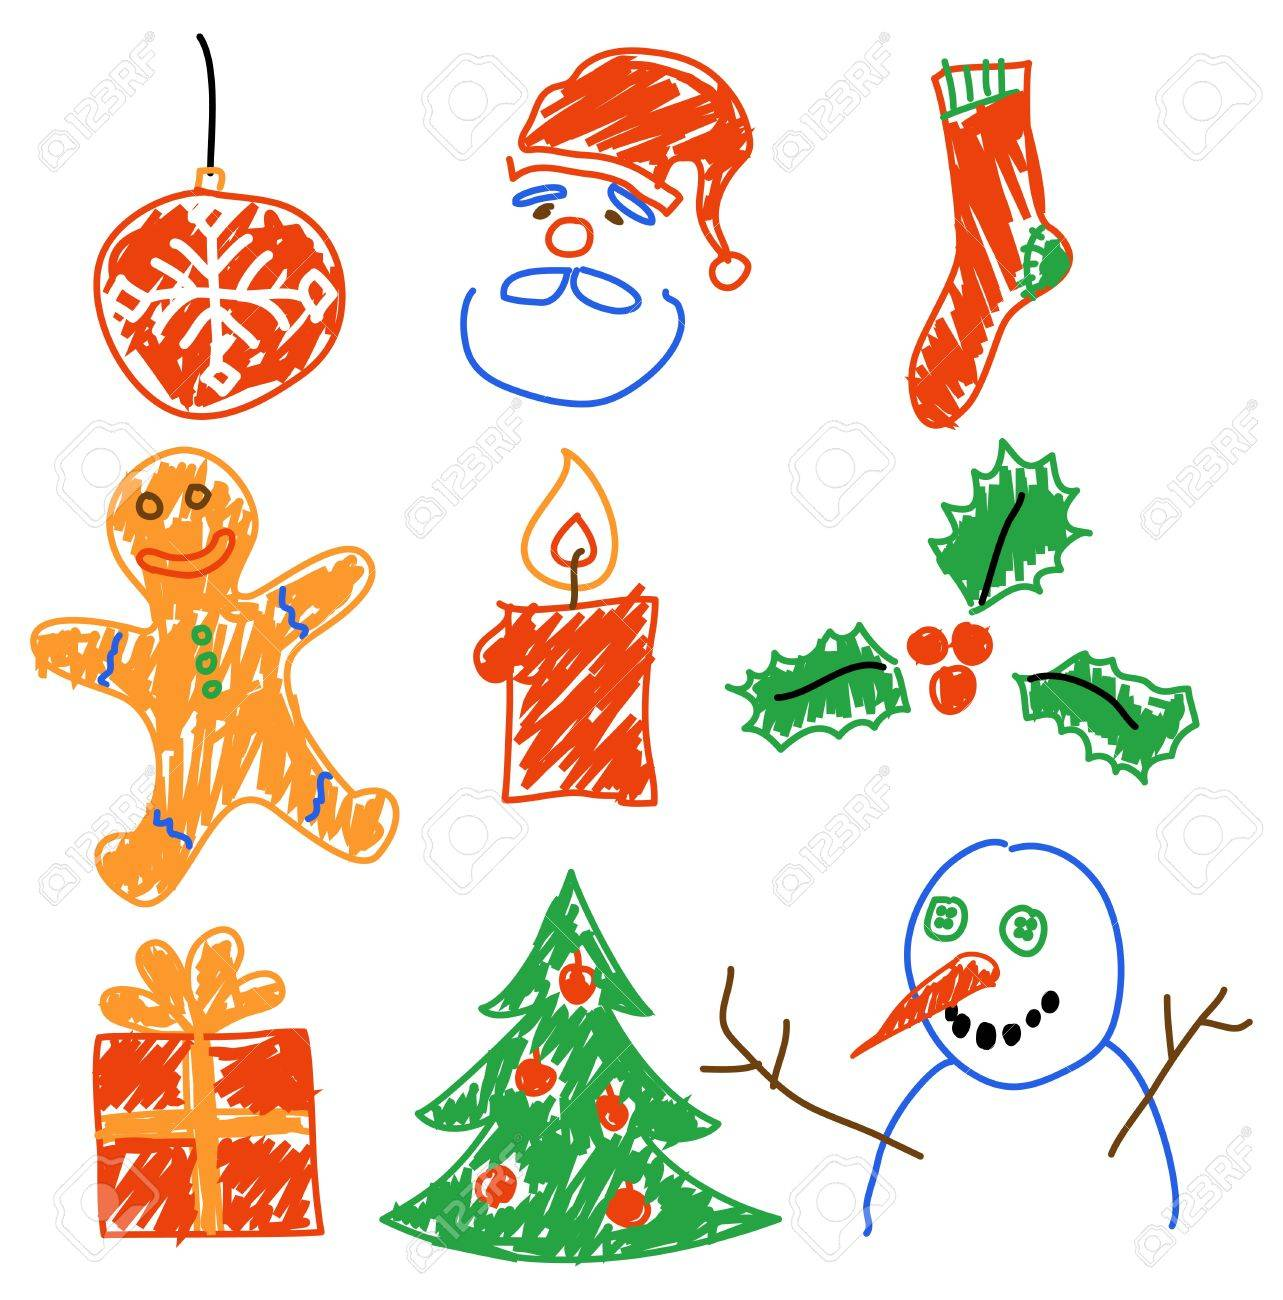 Drawings Of Christmas Decorations.Hand Drawing Christmas Decorations Santa Snowman Cookie And